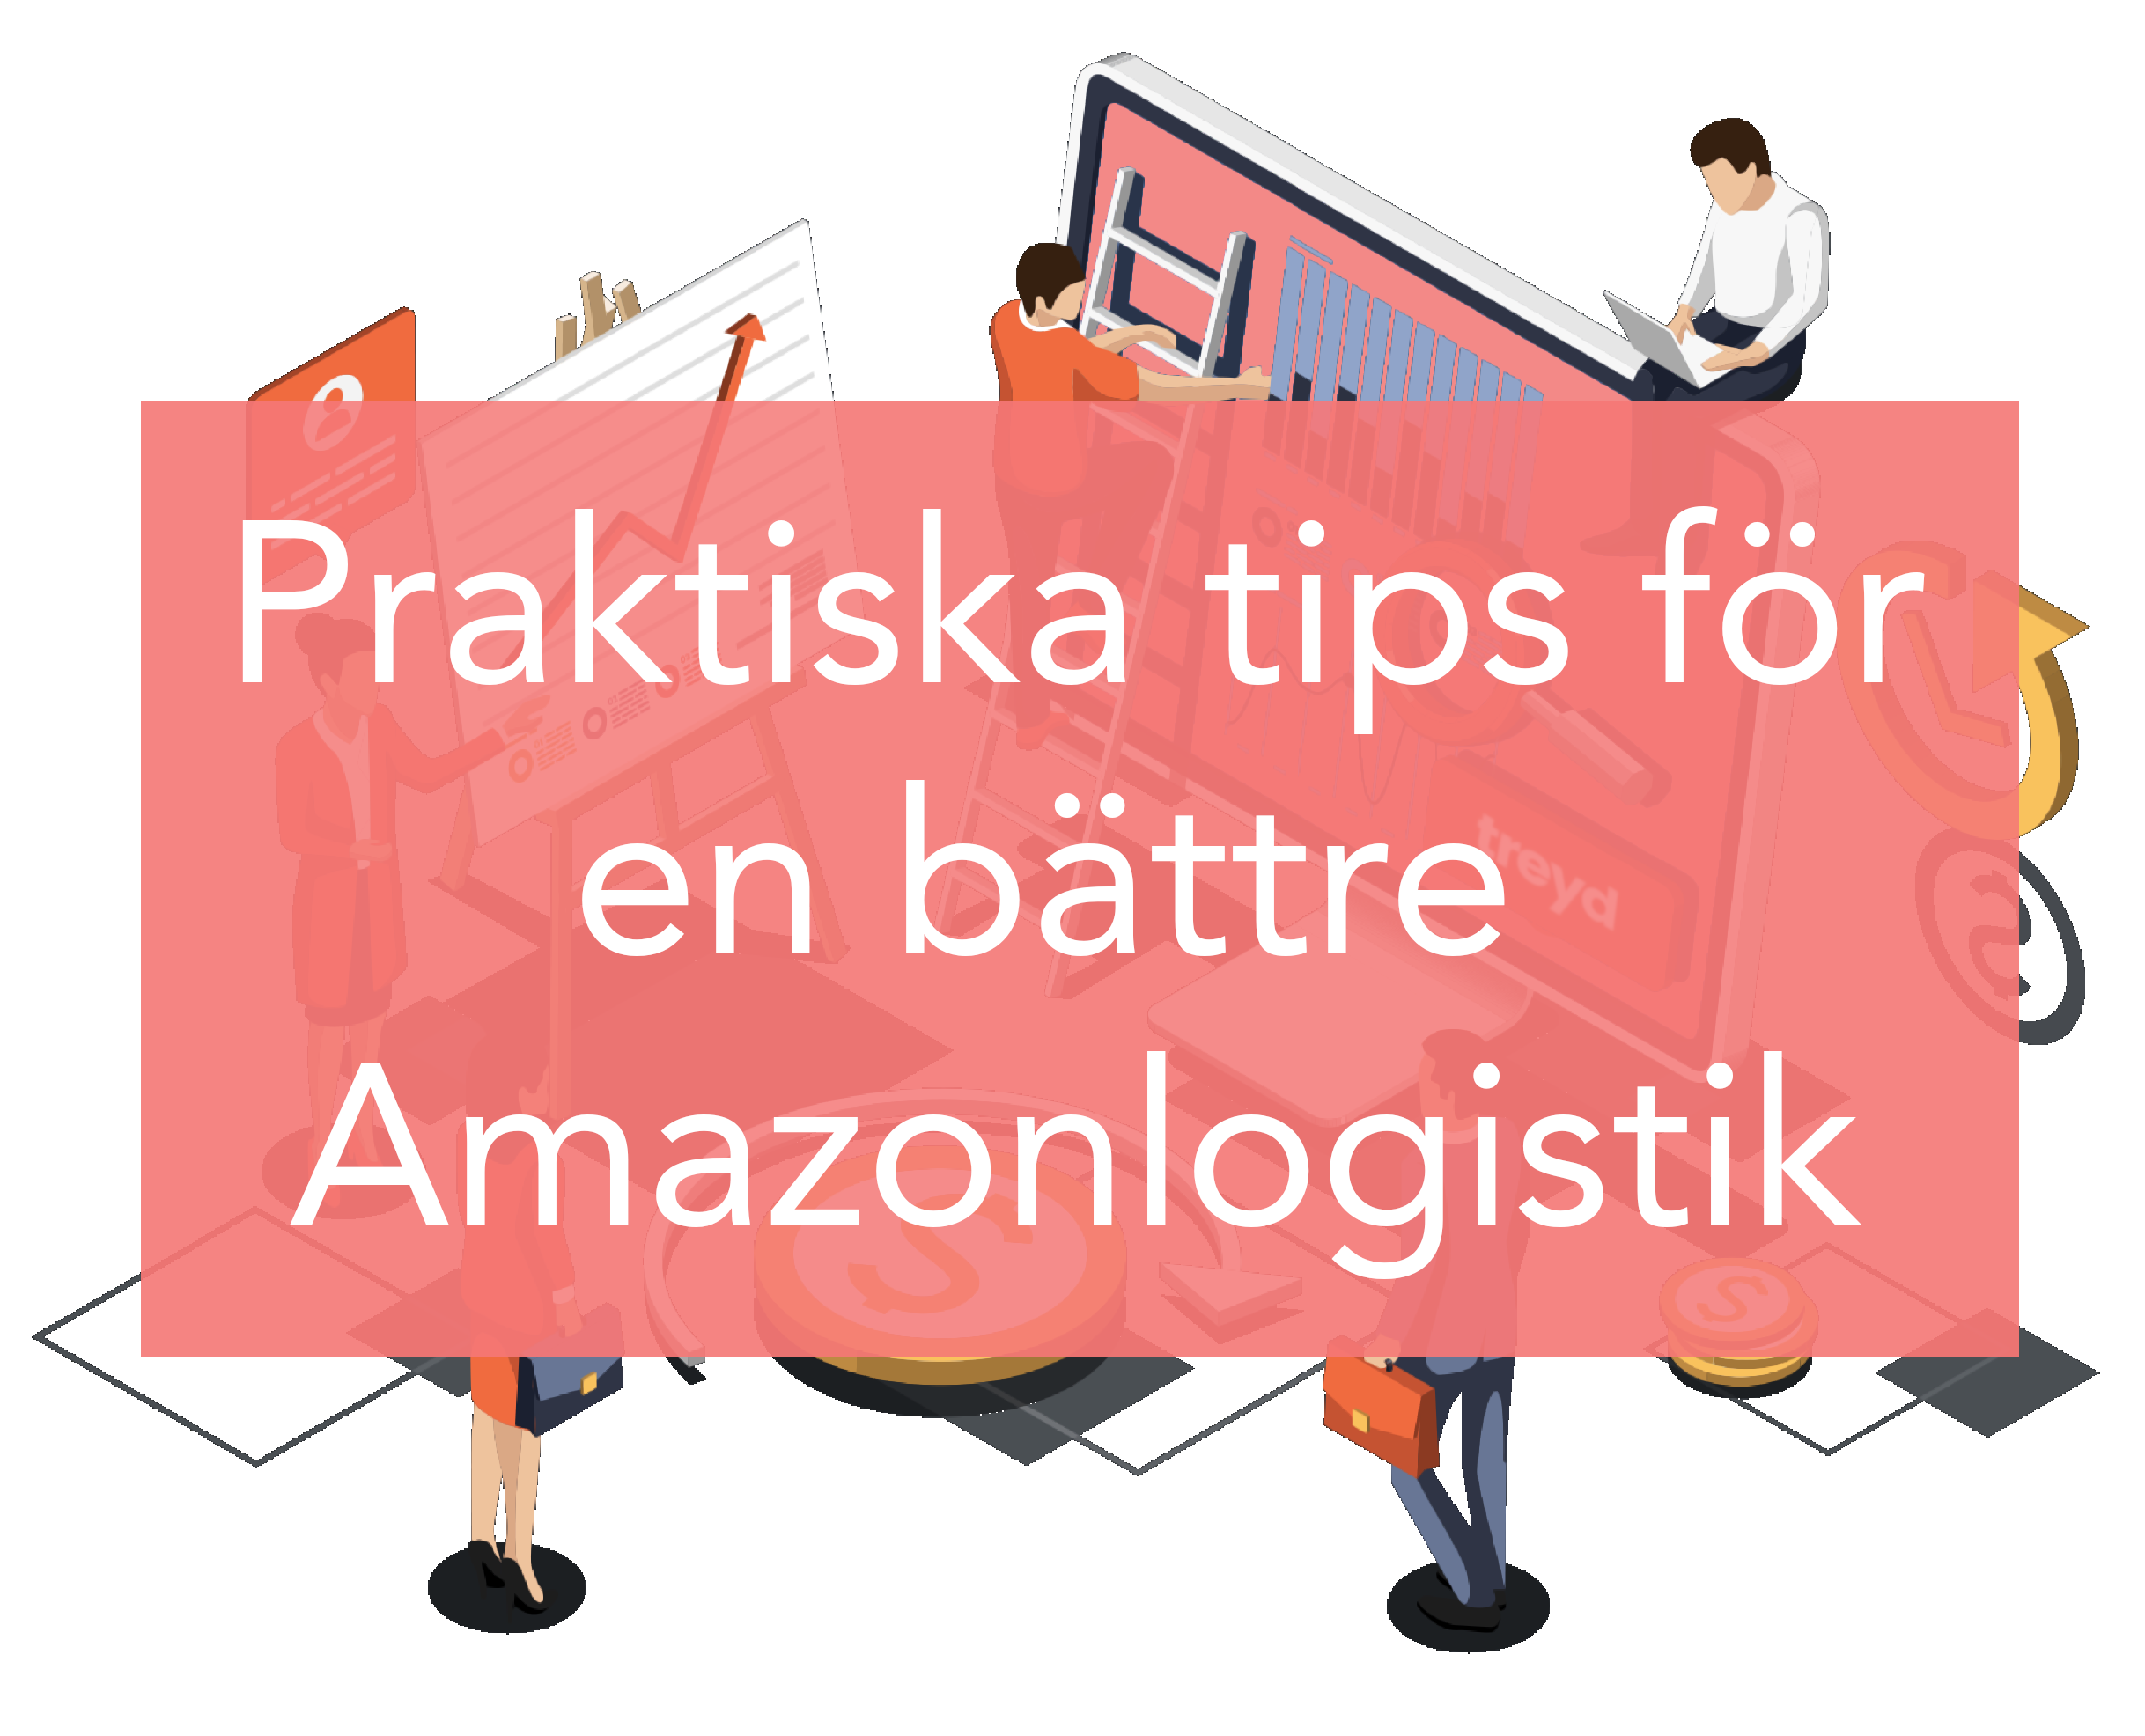 Praktiska tips för logistik på Amazon